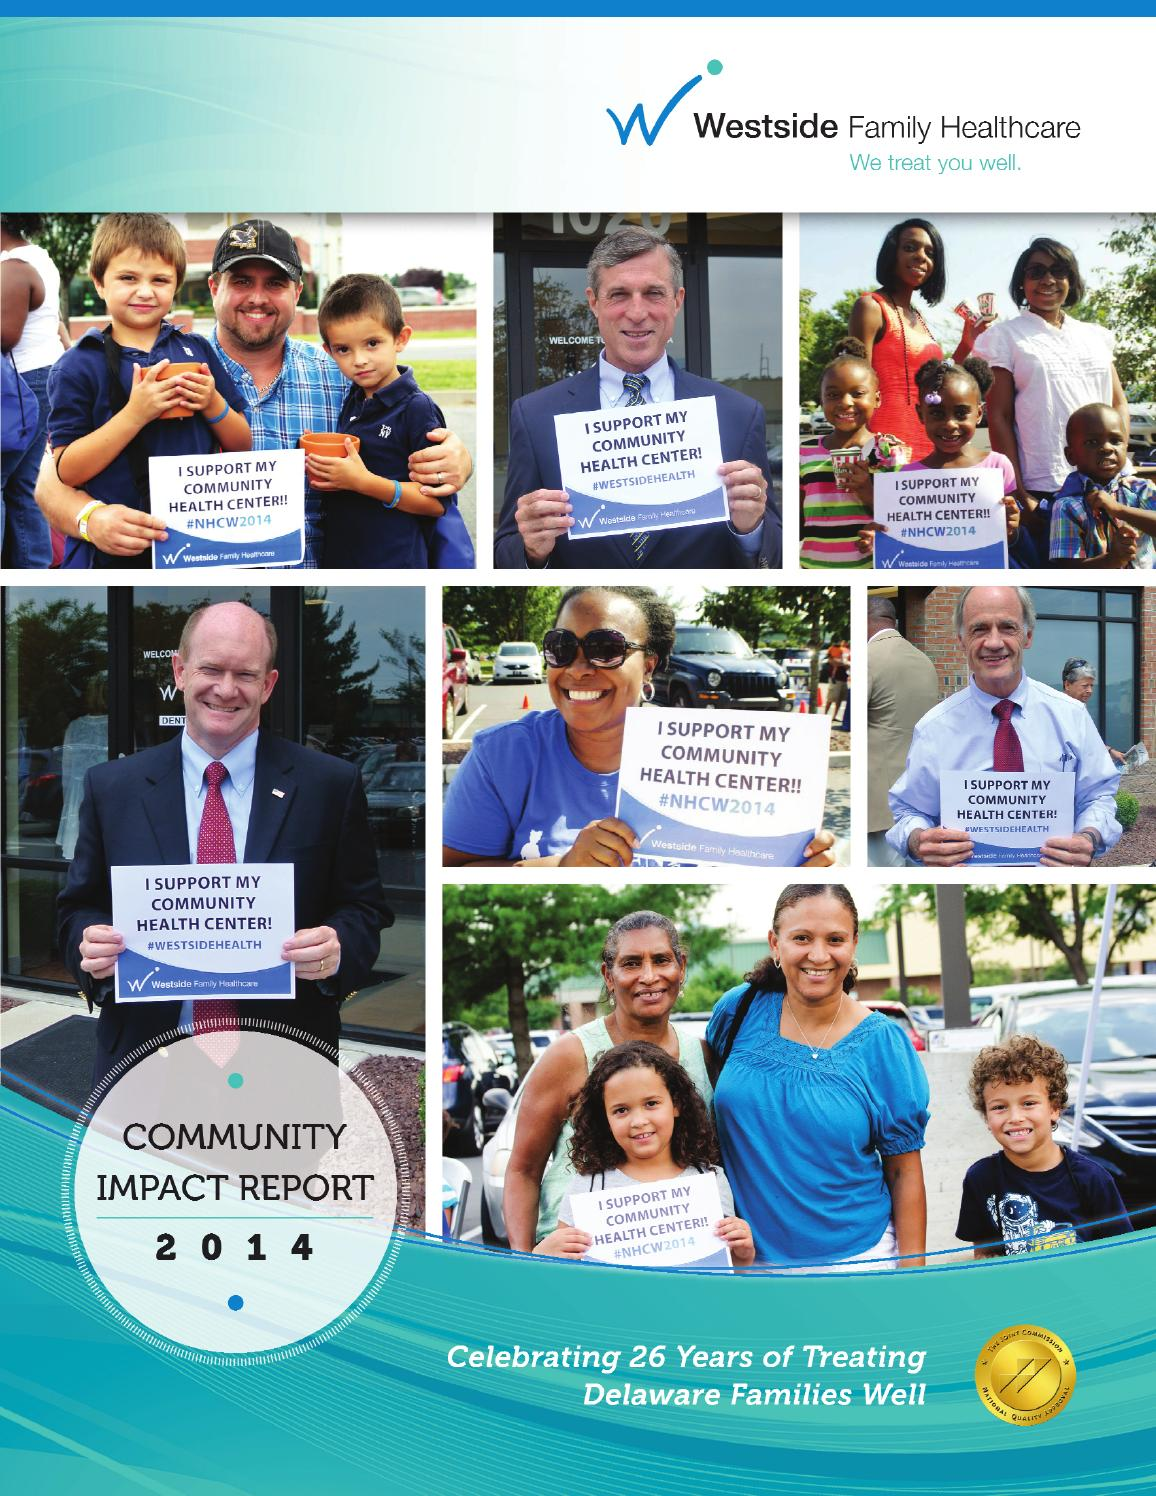 2014 Westside Family Healthcare Community Impact Report By